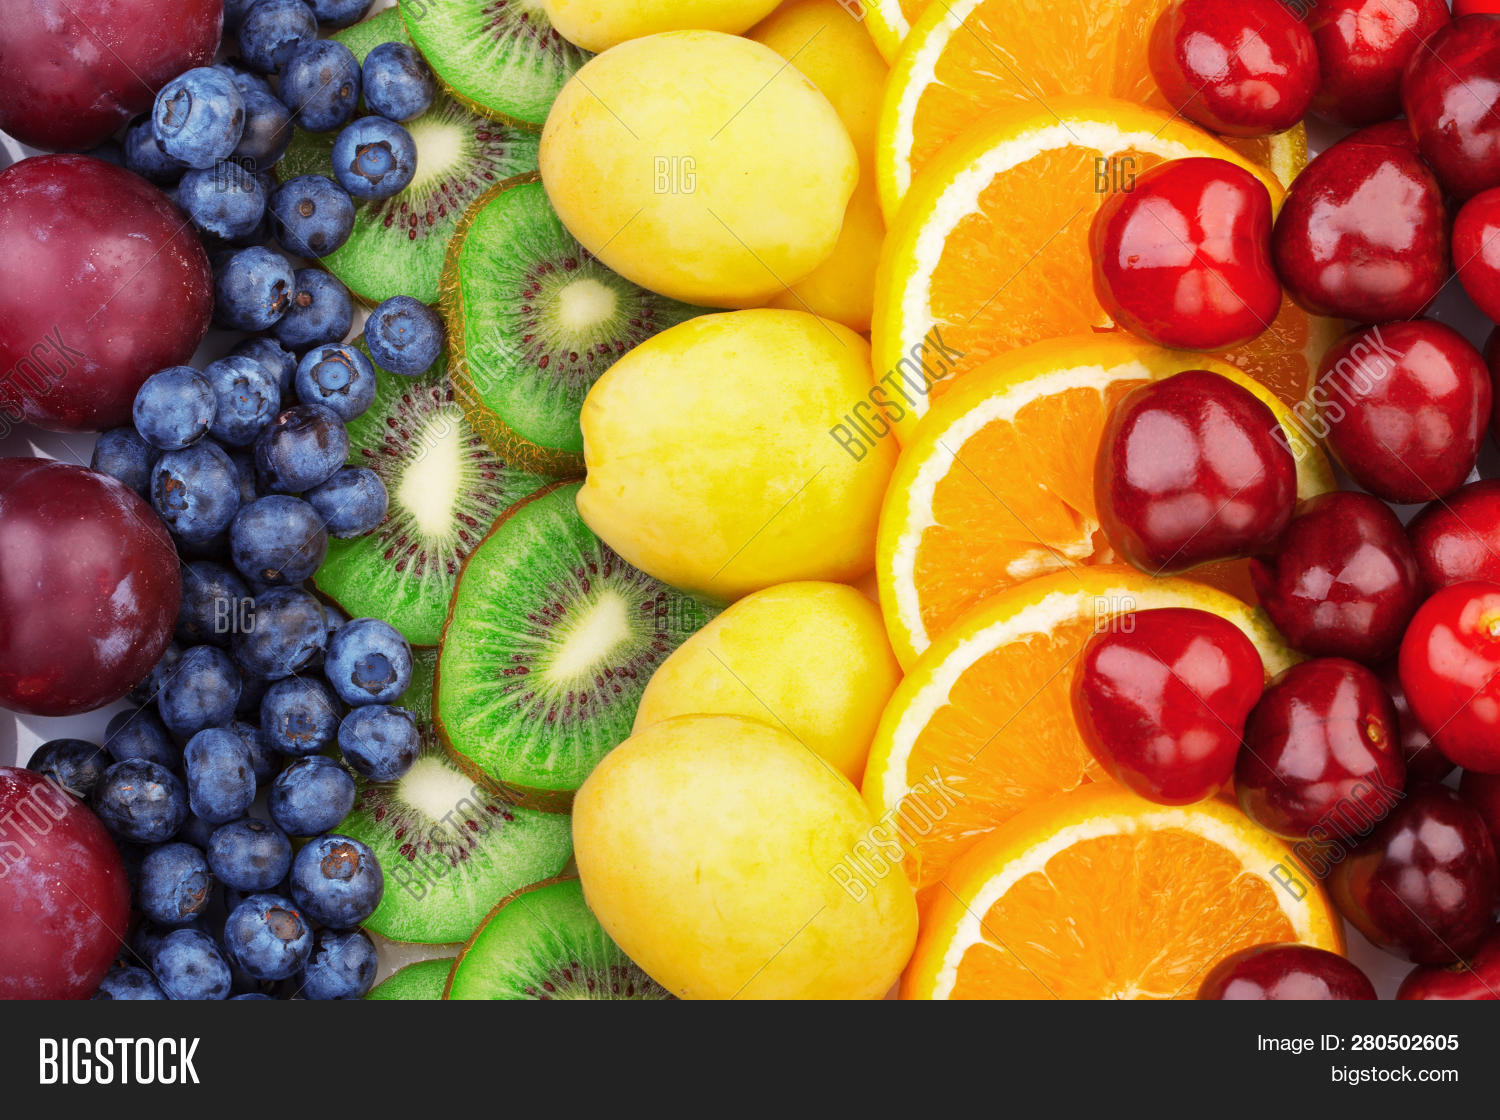 abstract,apple,assortment,background,bananas,berries,bright,citrus,colorful,delicious,diet,eating,exotic,food,fresh,fructose,fruit,green,group,healthy,juicy,kiwi,lemon,many,market,melon,mix,mixed,natural,nutrition,orange,organic,rainbow,raw,red,ripe,season,smoothie,strawberry,summer,supermarket,sweet,tropical,variety,veg,vegetarian,vitamin,yellow